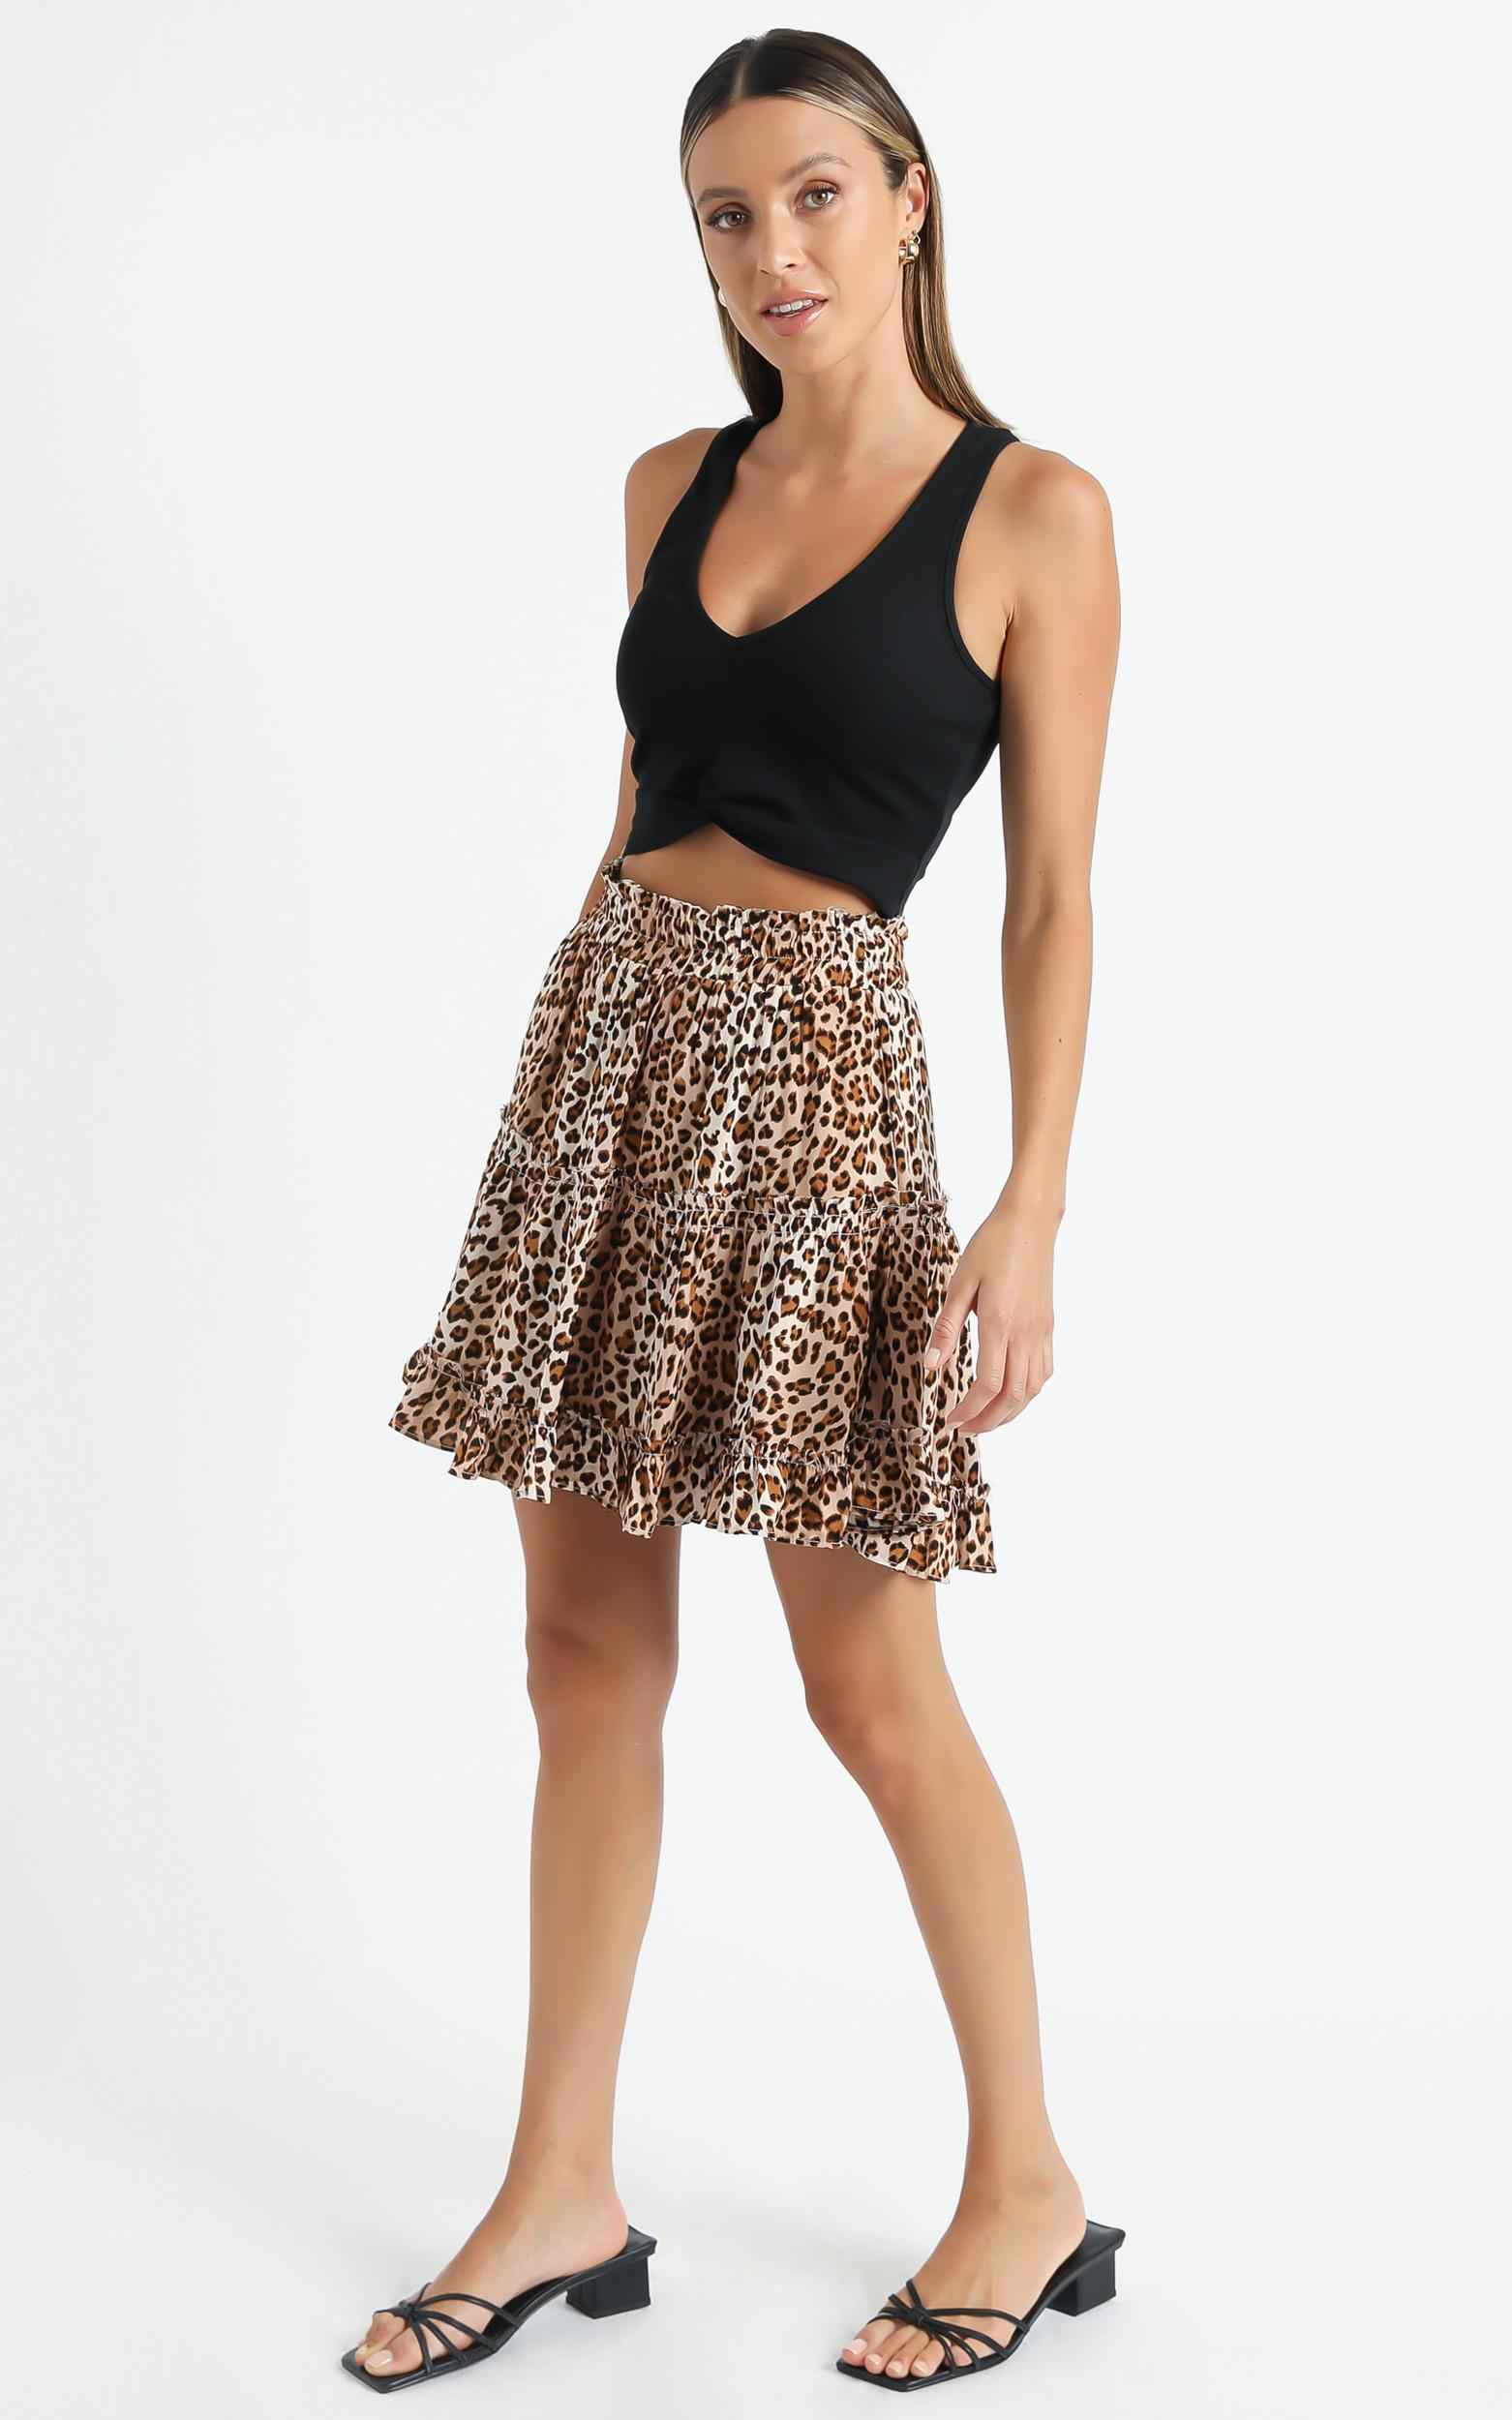 Winslow Skirt in Leopard - 6 (XS), Brown, hi-res image number null